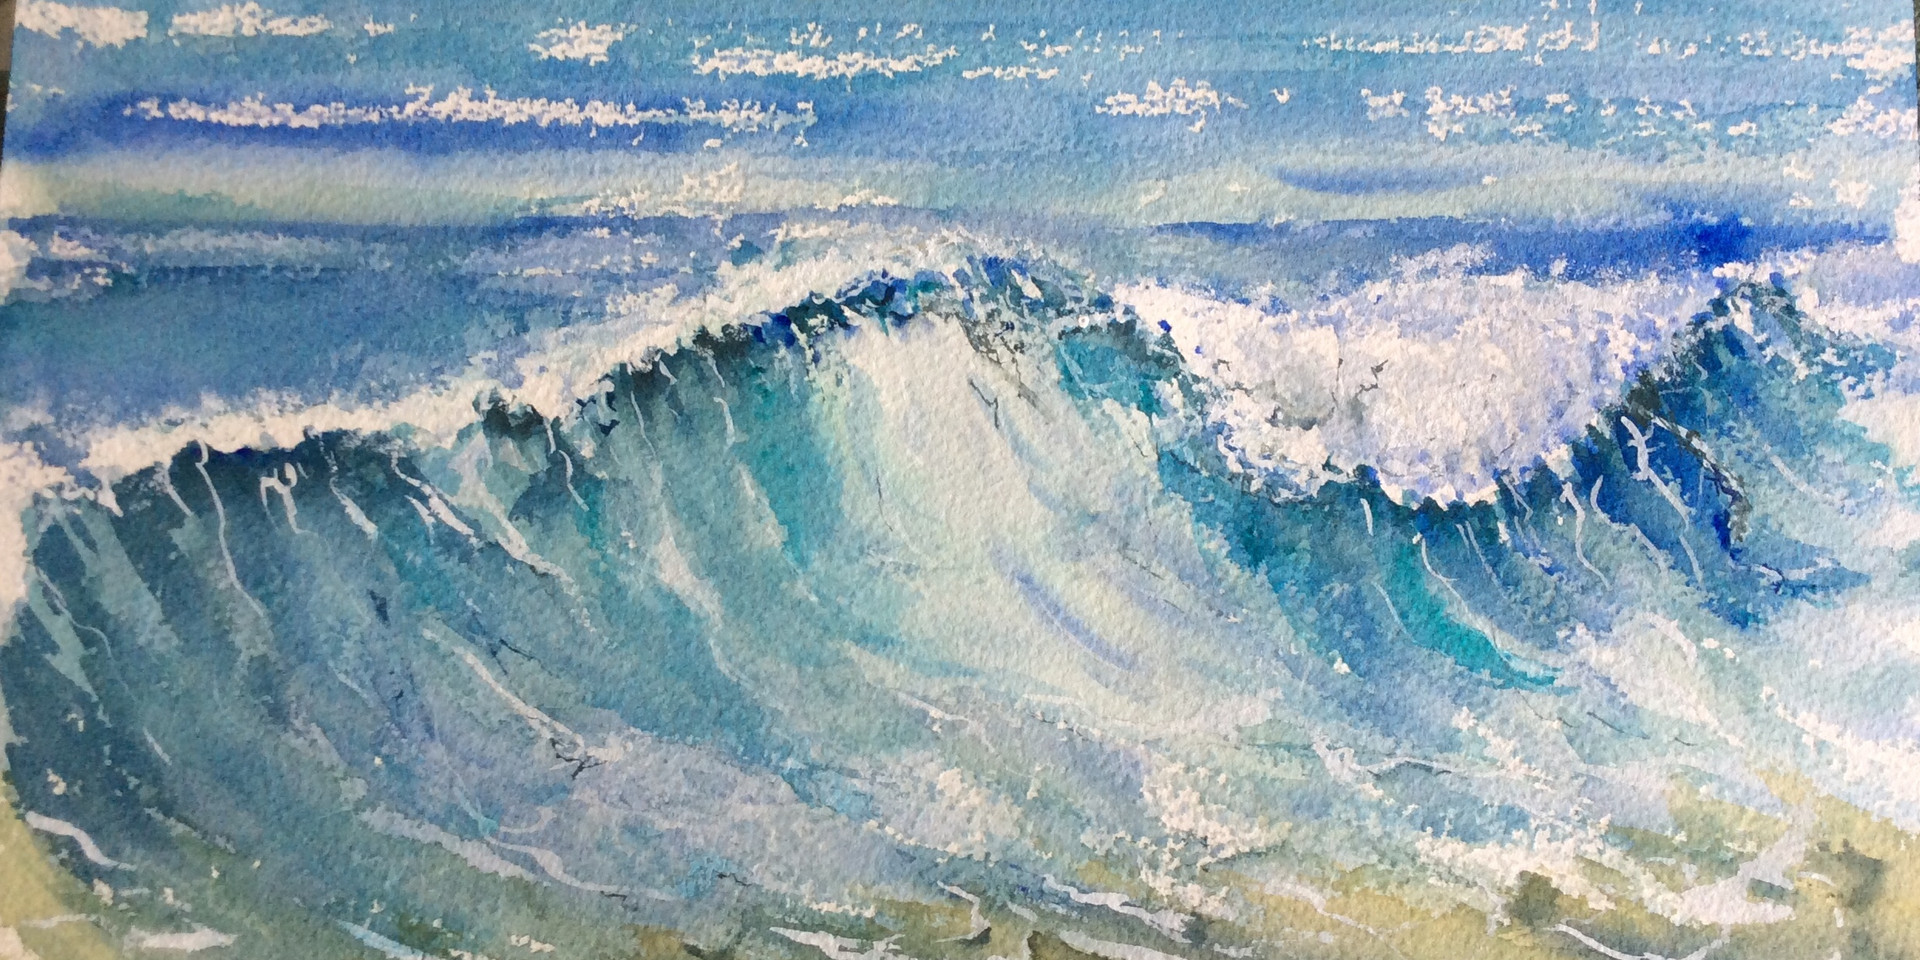 Cascading waves